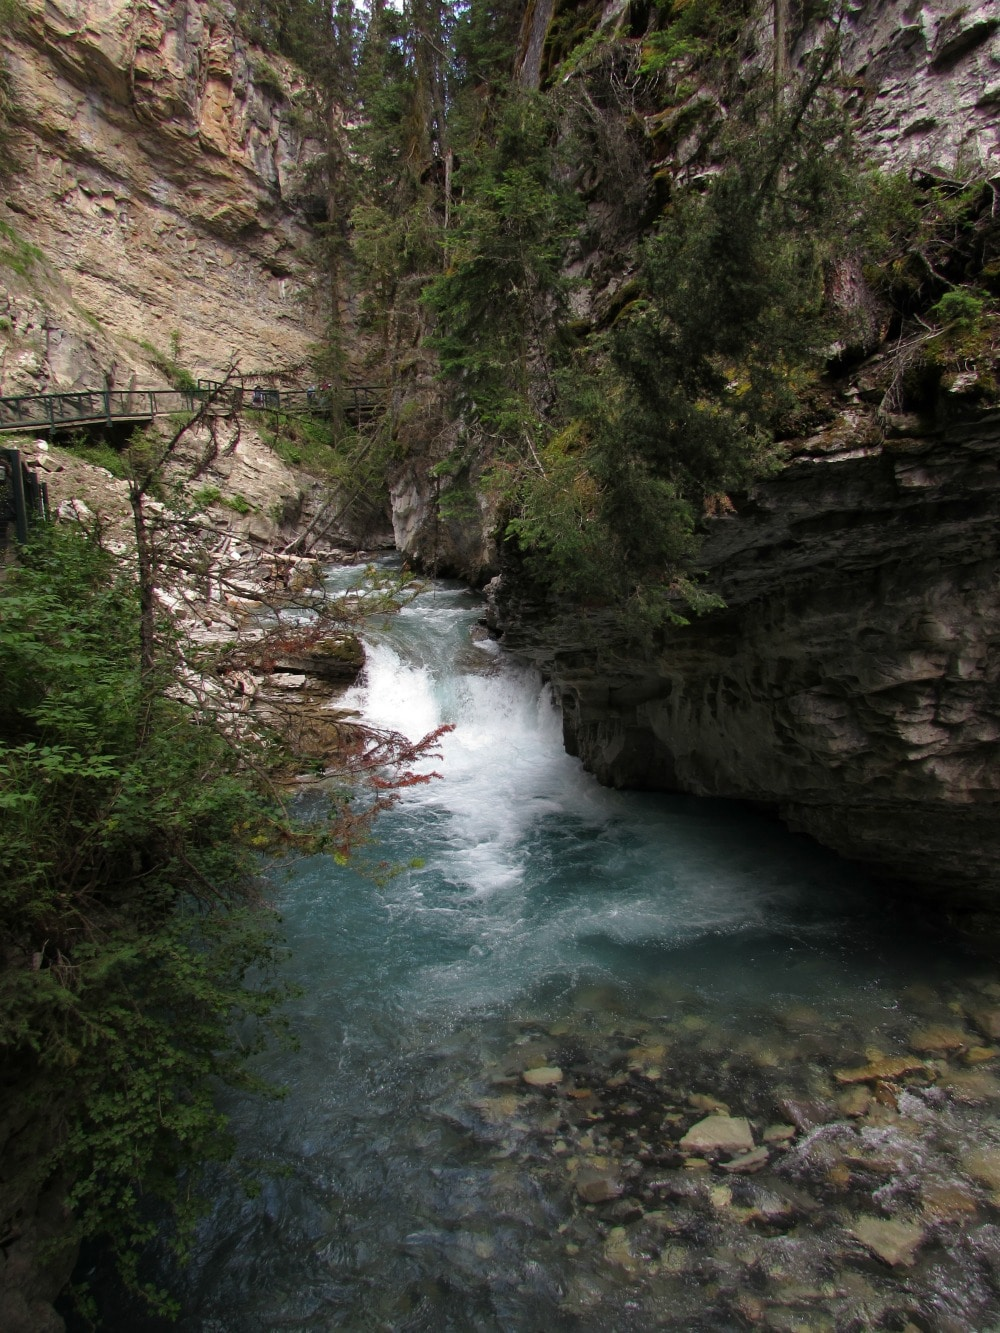 Johnston Canyon #waterfall with catwalks built into the limestone walls #Canada #Banff